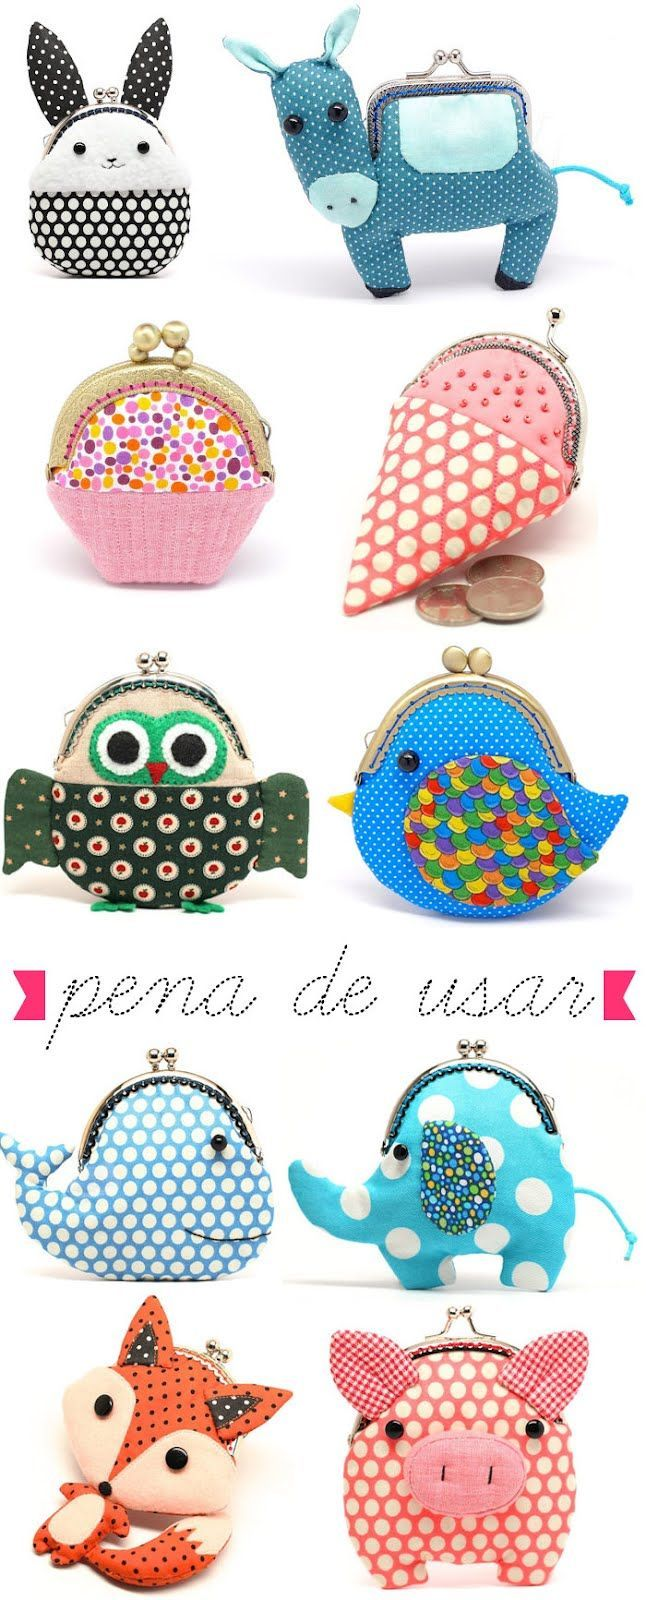 Cute pet frame purses